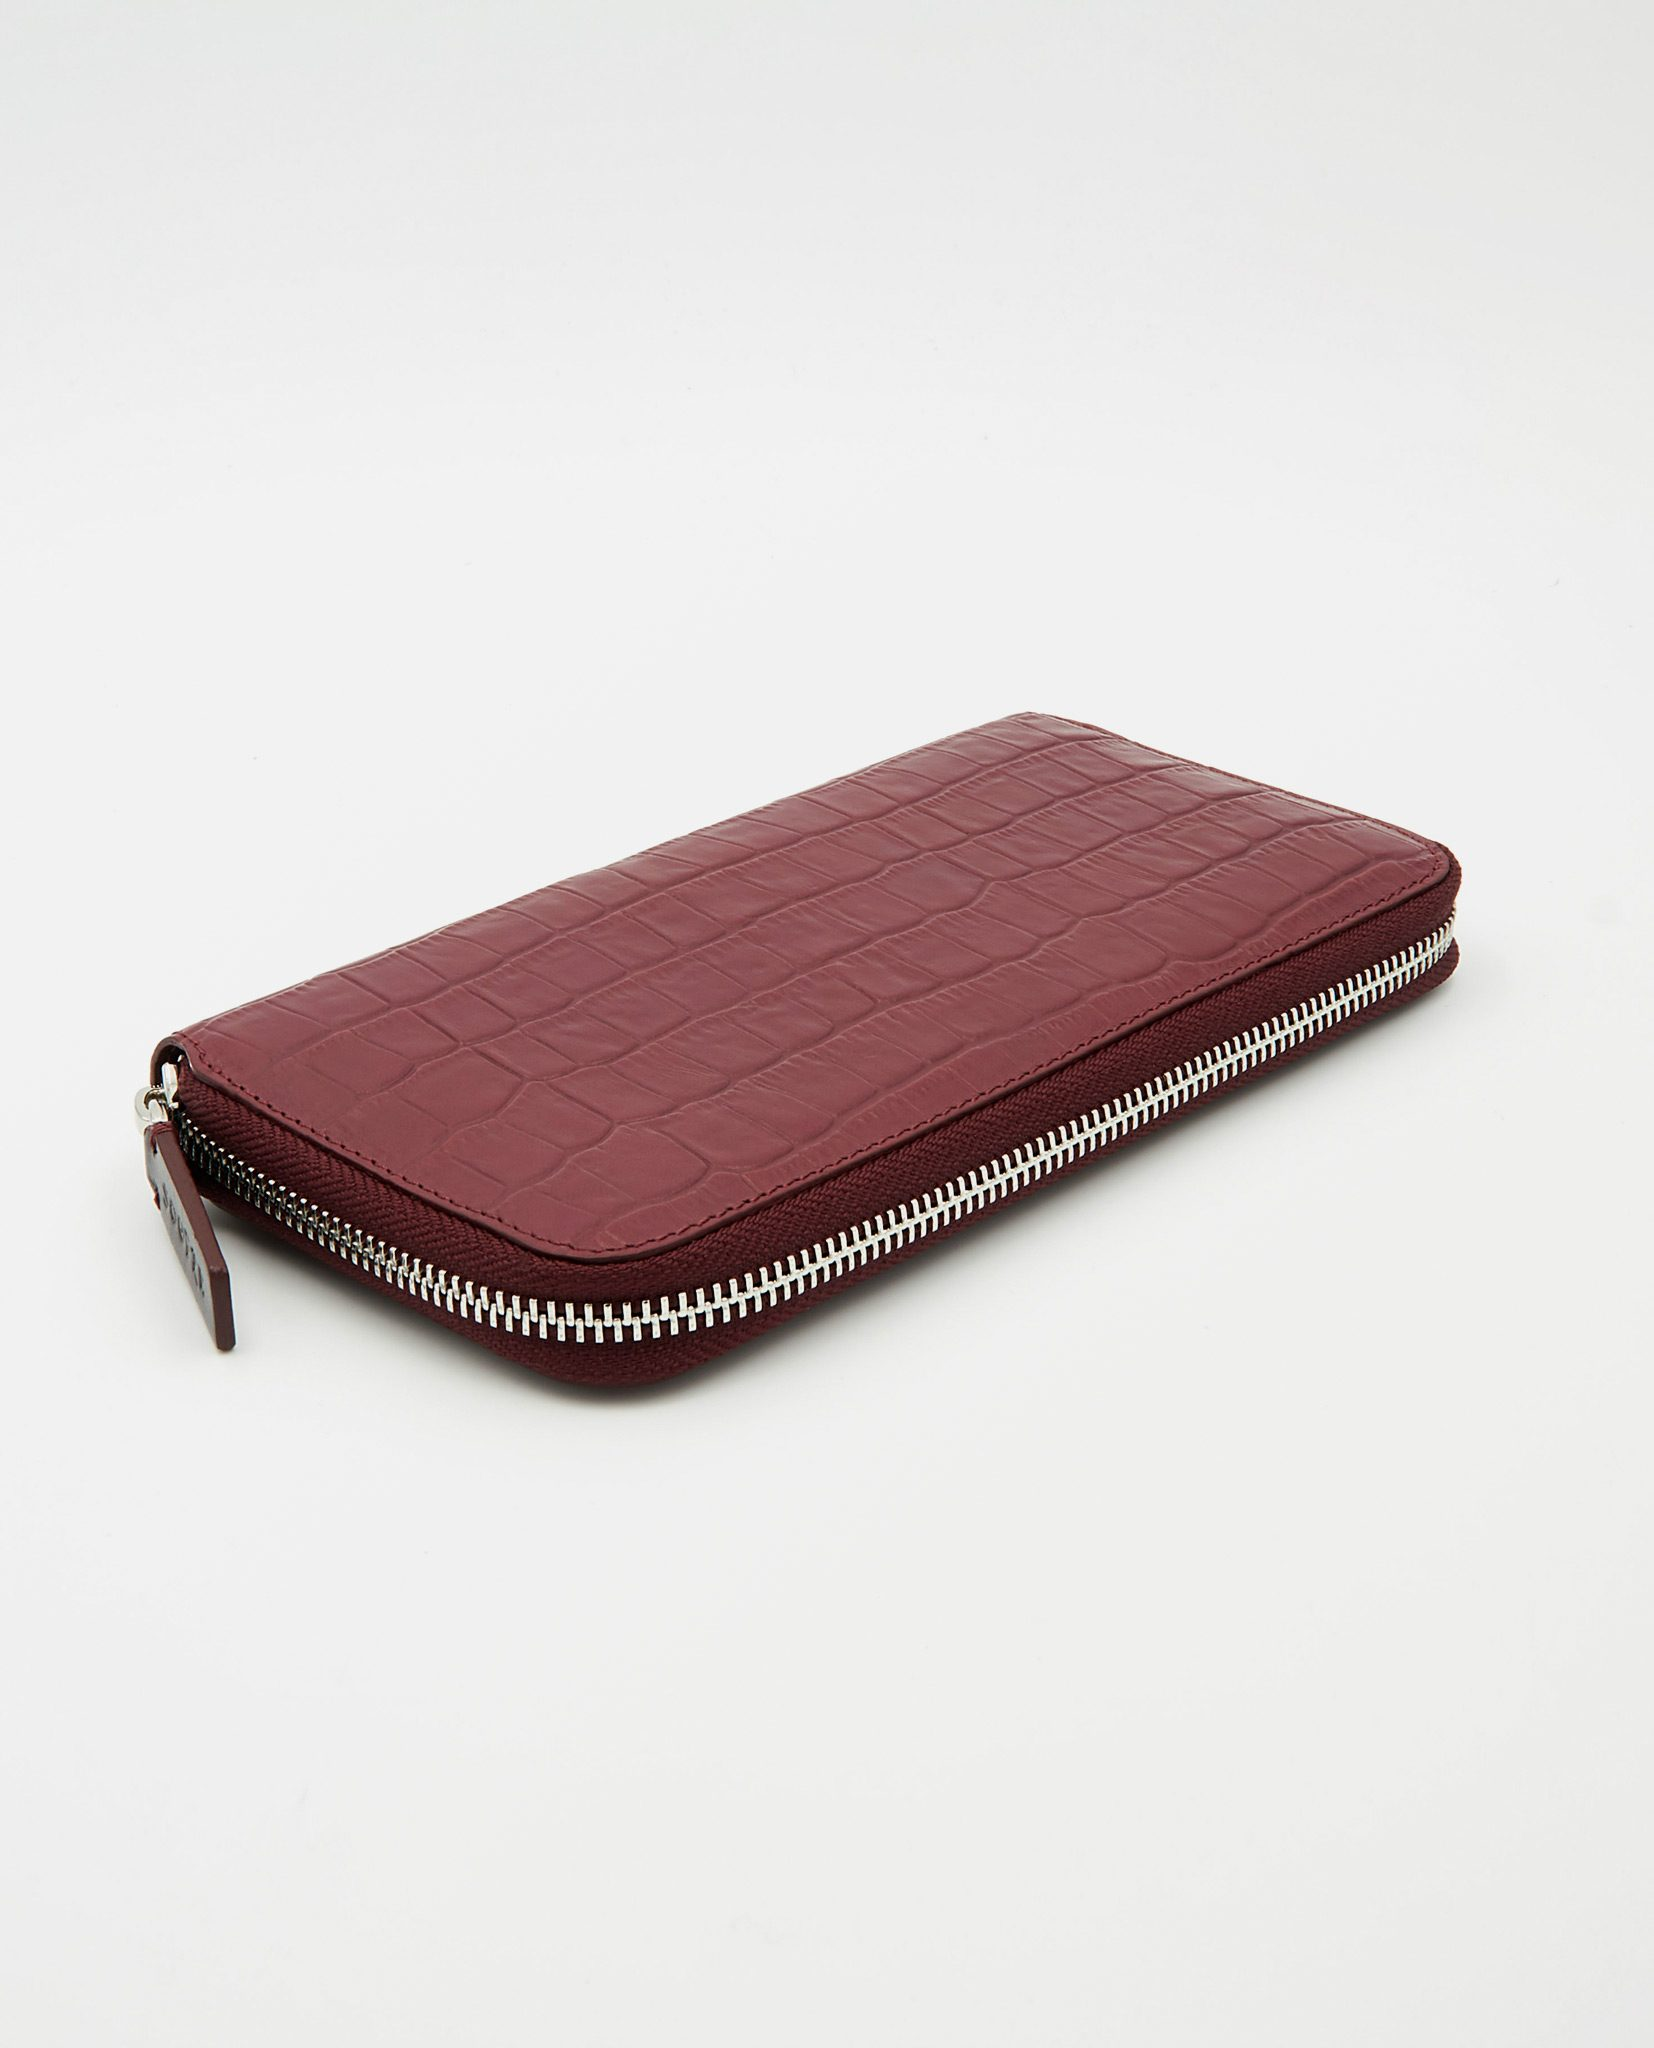 Soofre Women's Zip Wallet Crocodile Embossed Leather Burgundy-Blush